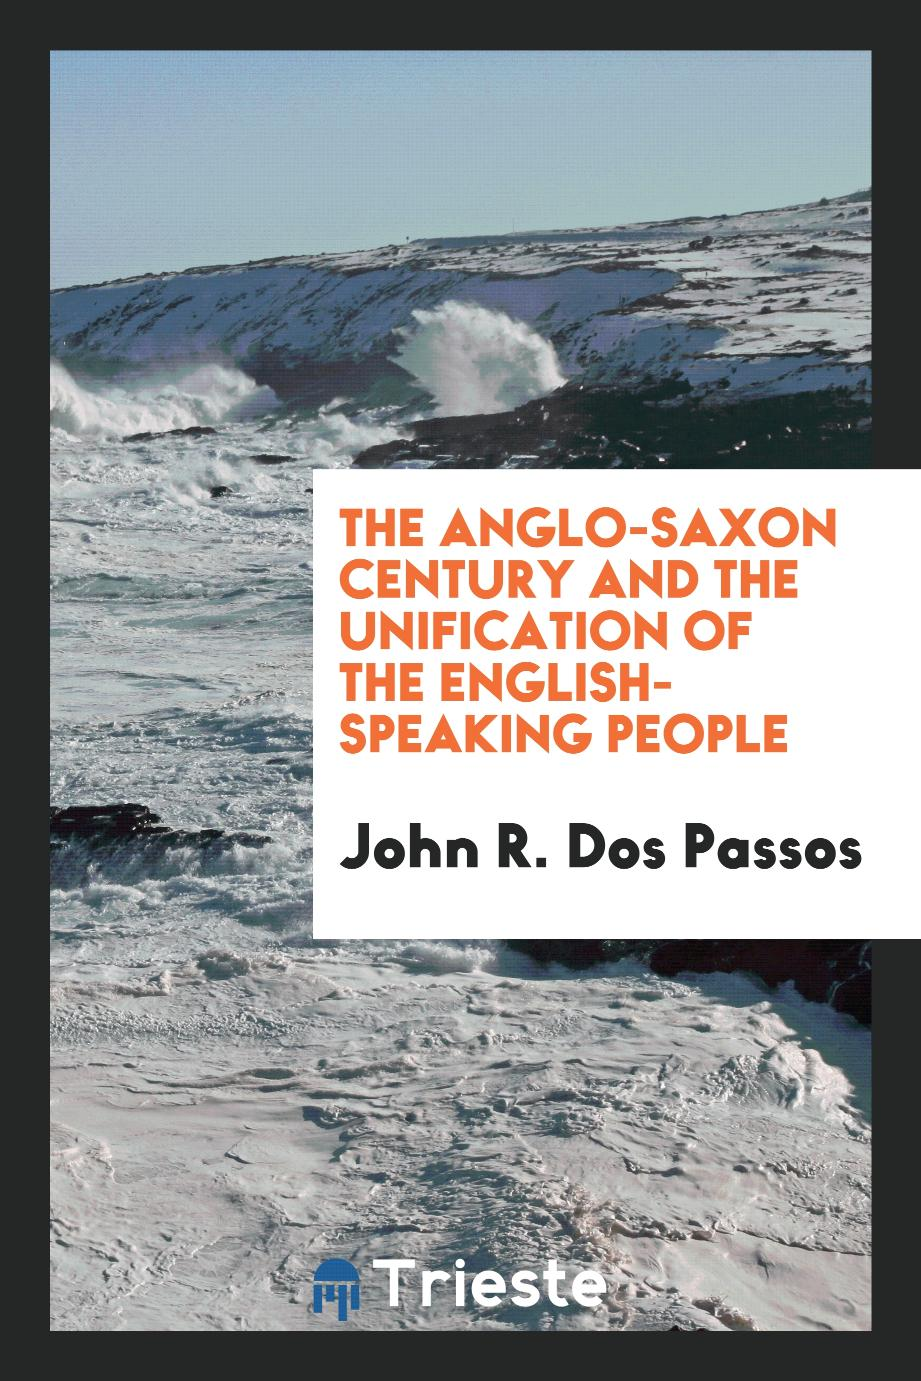 The Anglo-Saxon Century and the Unification of the English-Speaking People